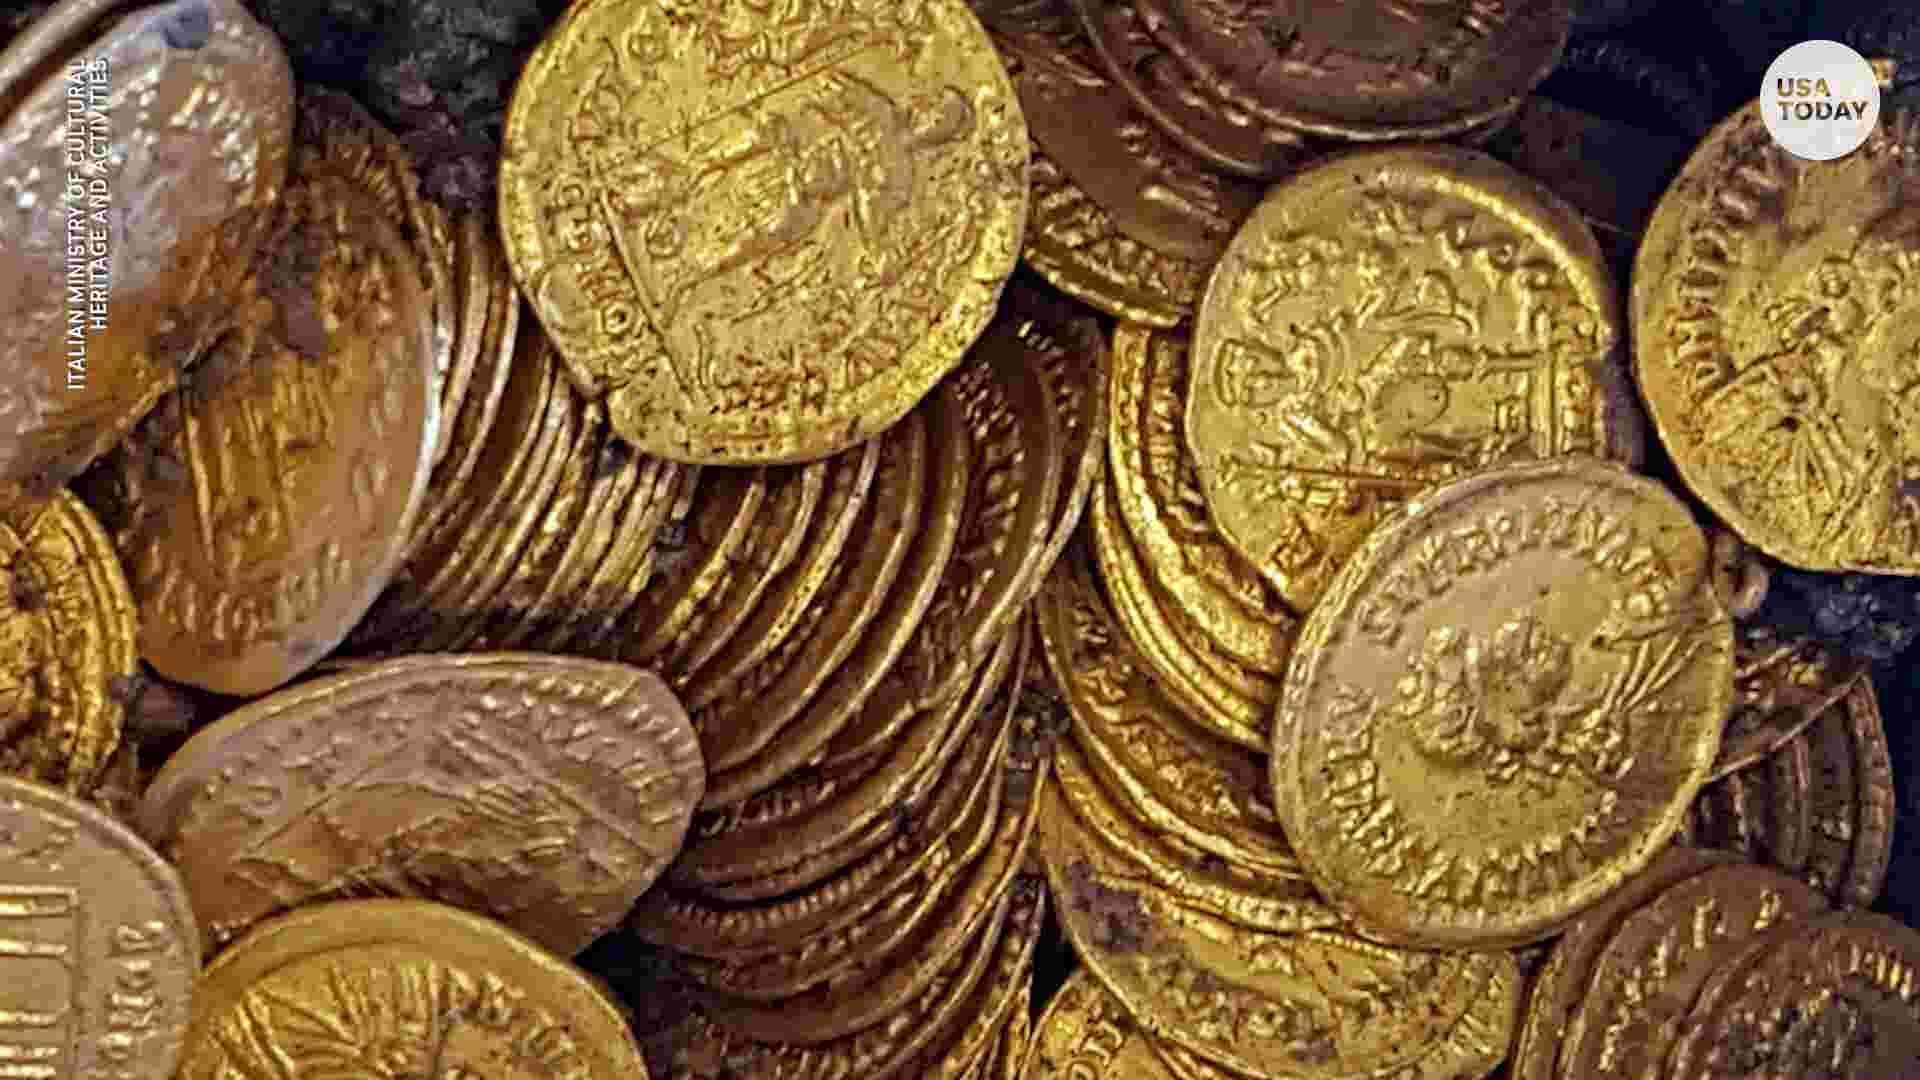 Hundreds of rare gold coins found at construction site